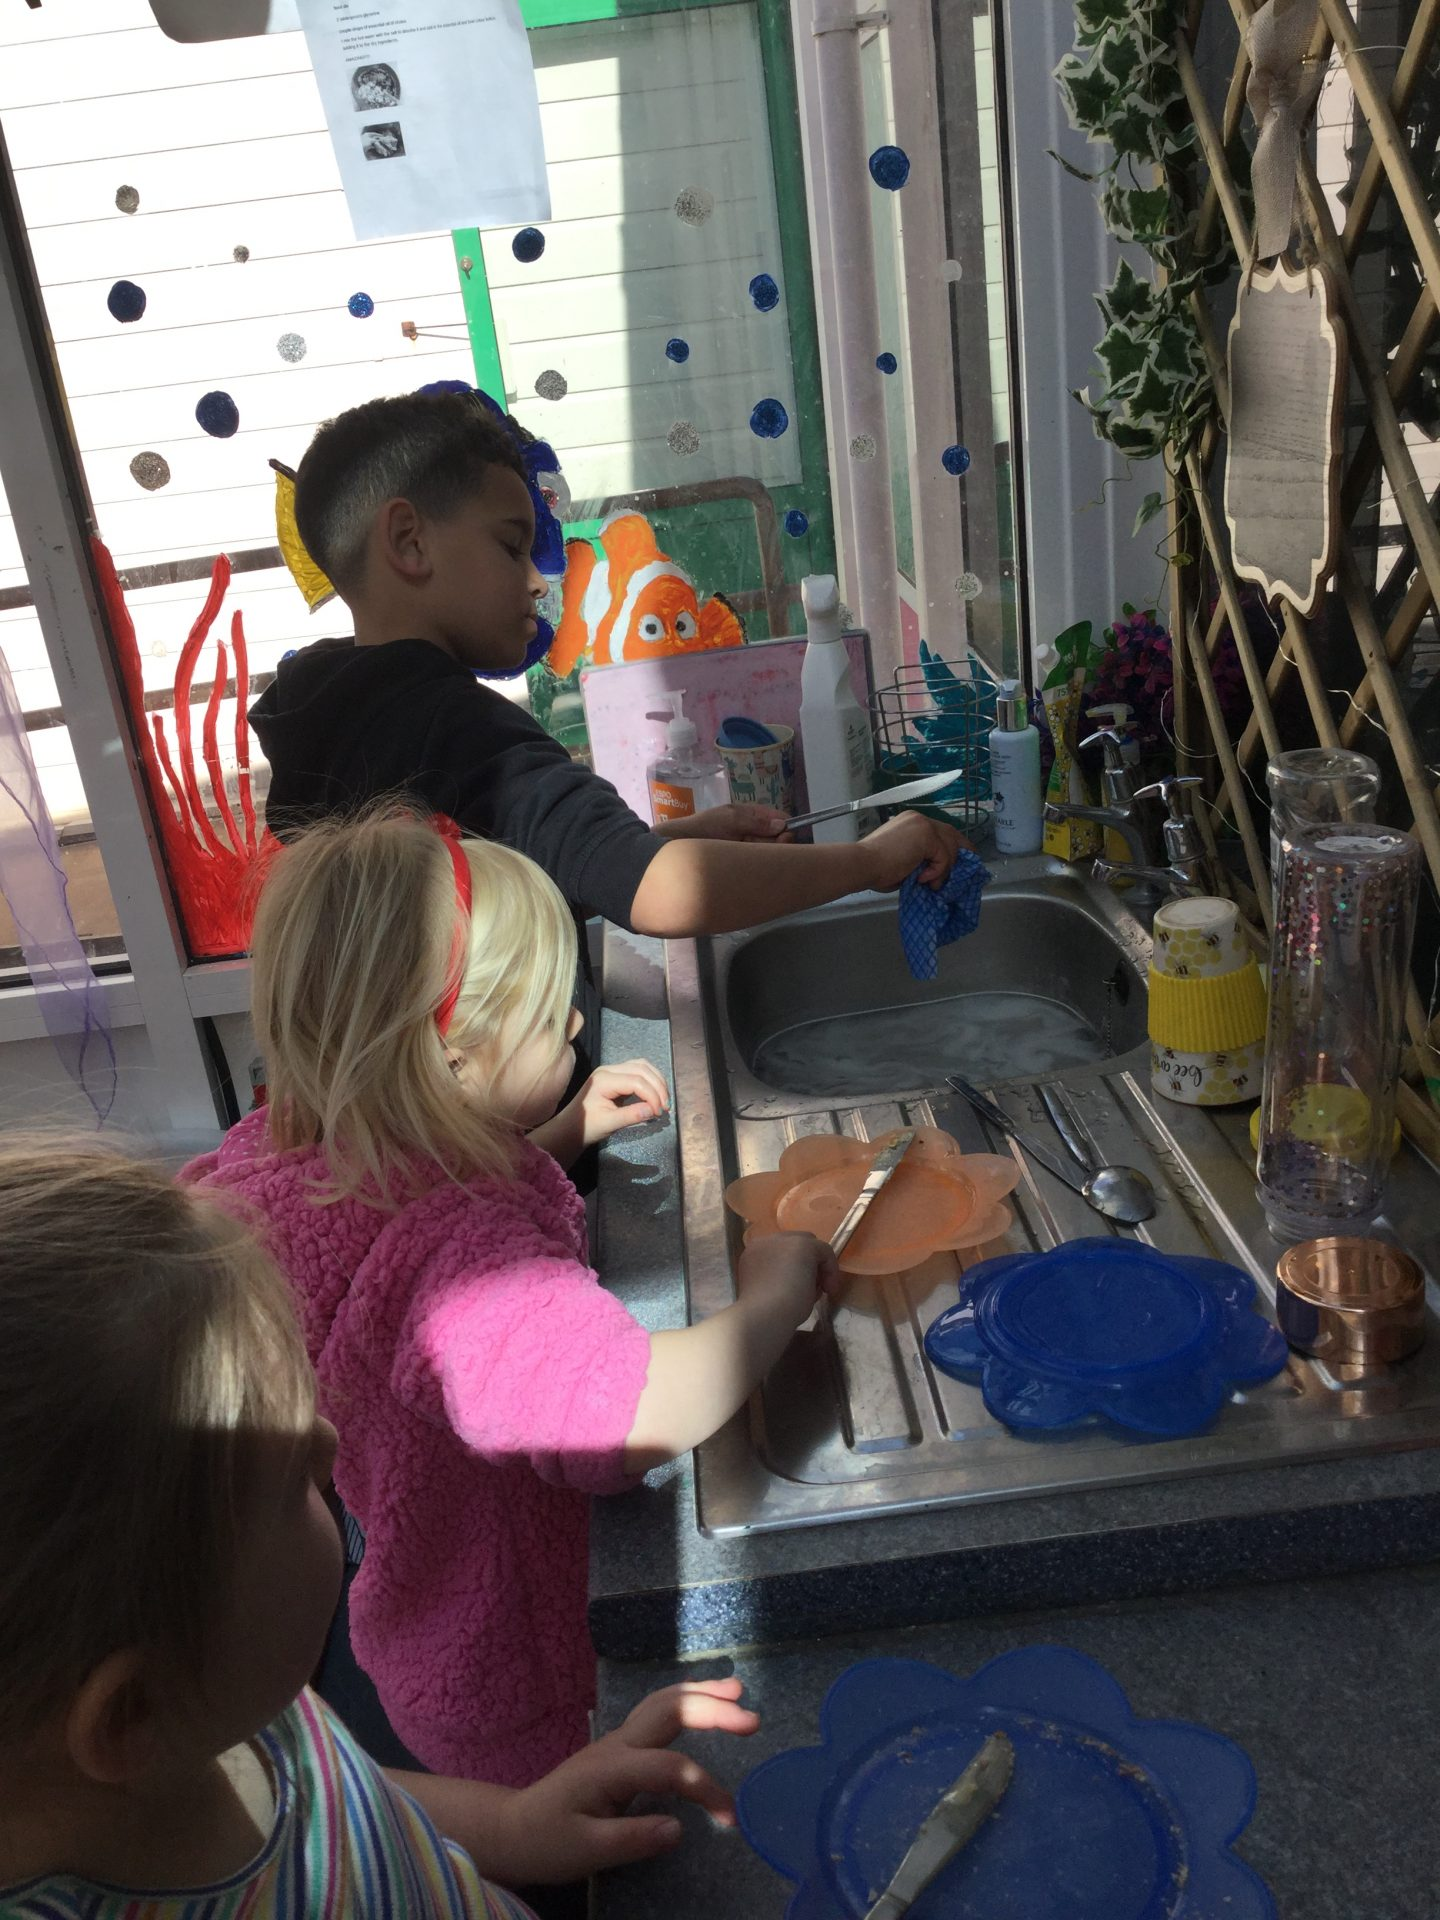 Our Day at School – 25th March 2020